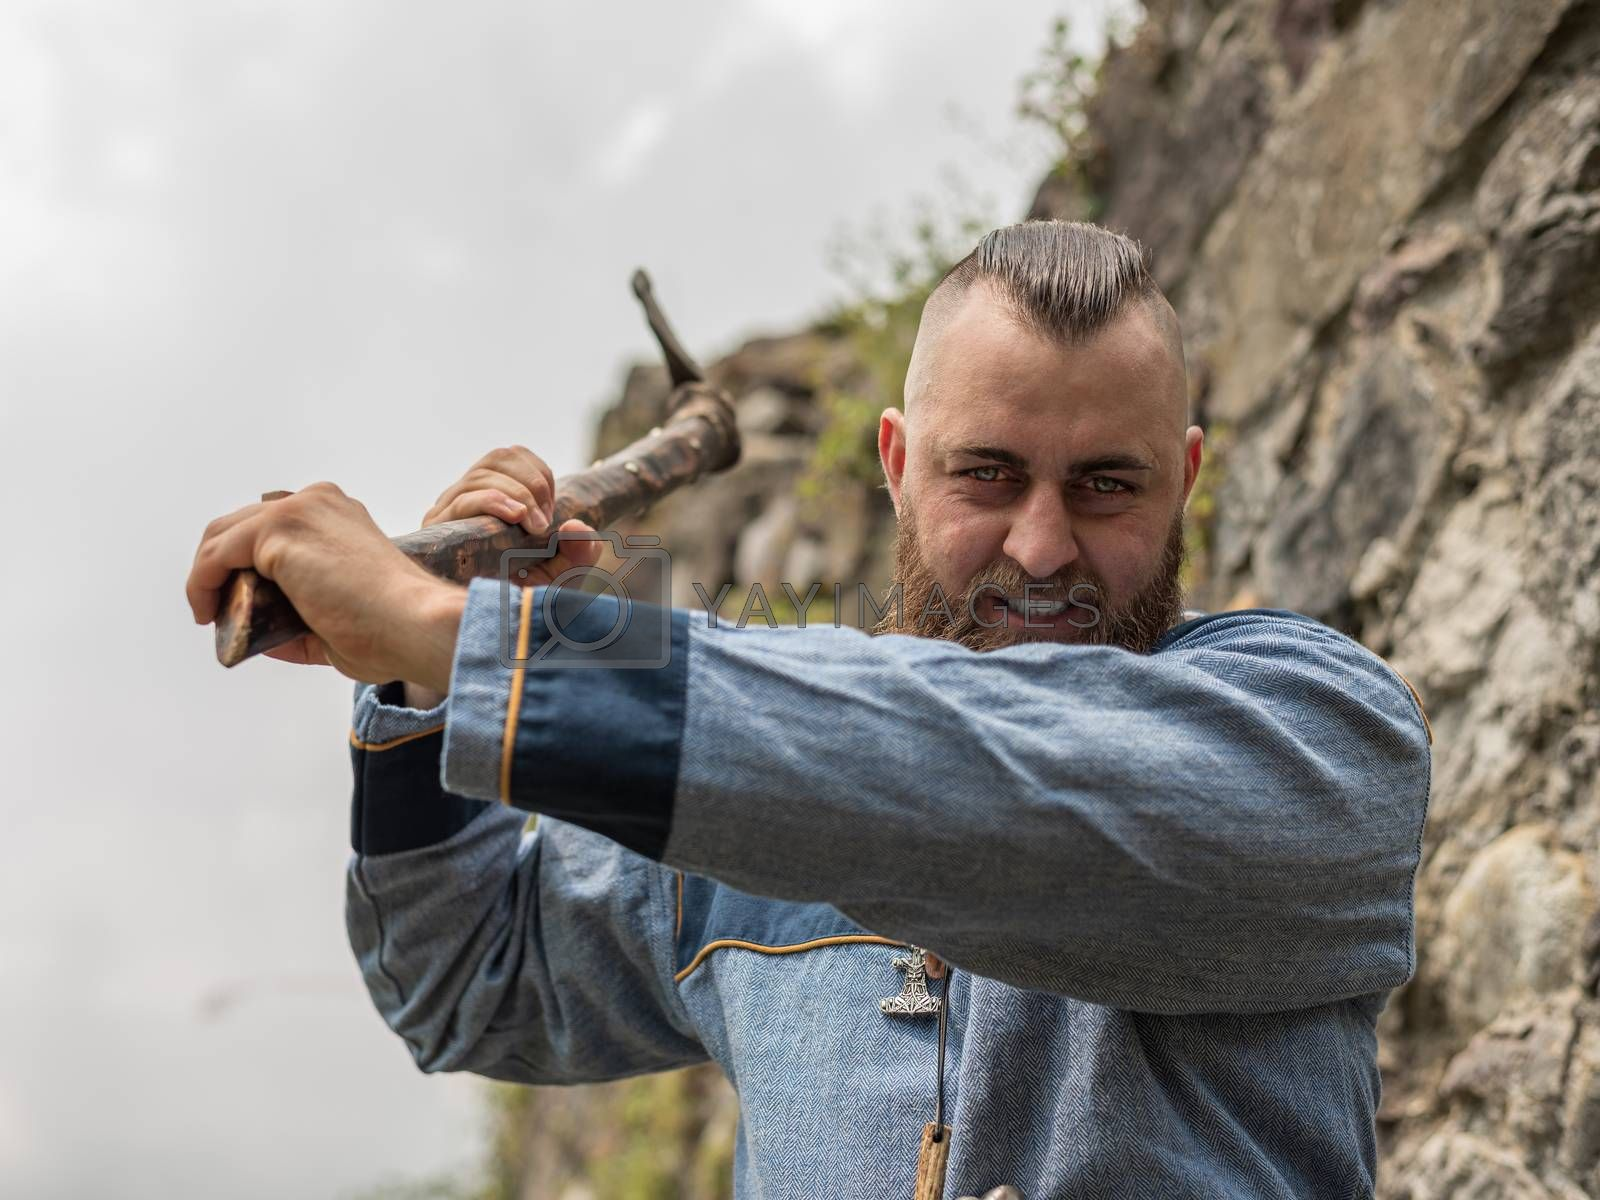 A man in medieval clothes wields an ax in the ruins of an ancient castle, a Viking historical reenactment